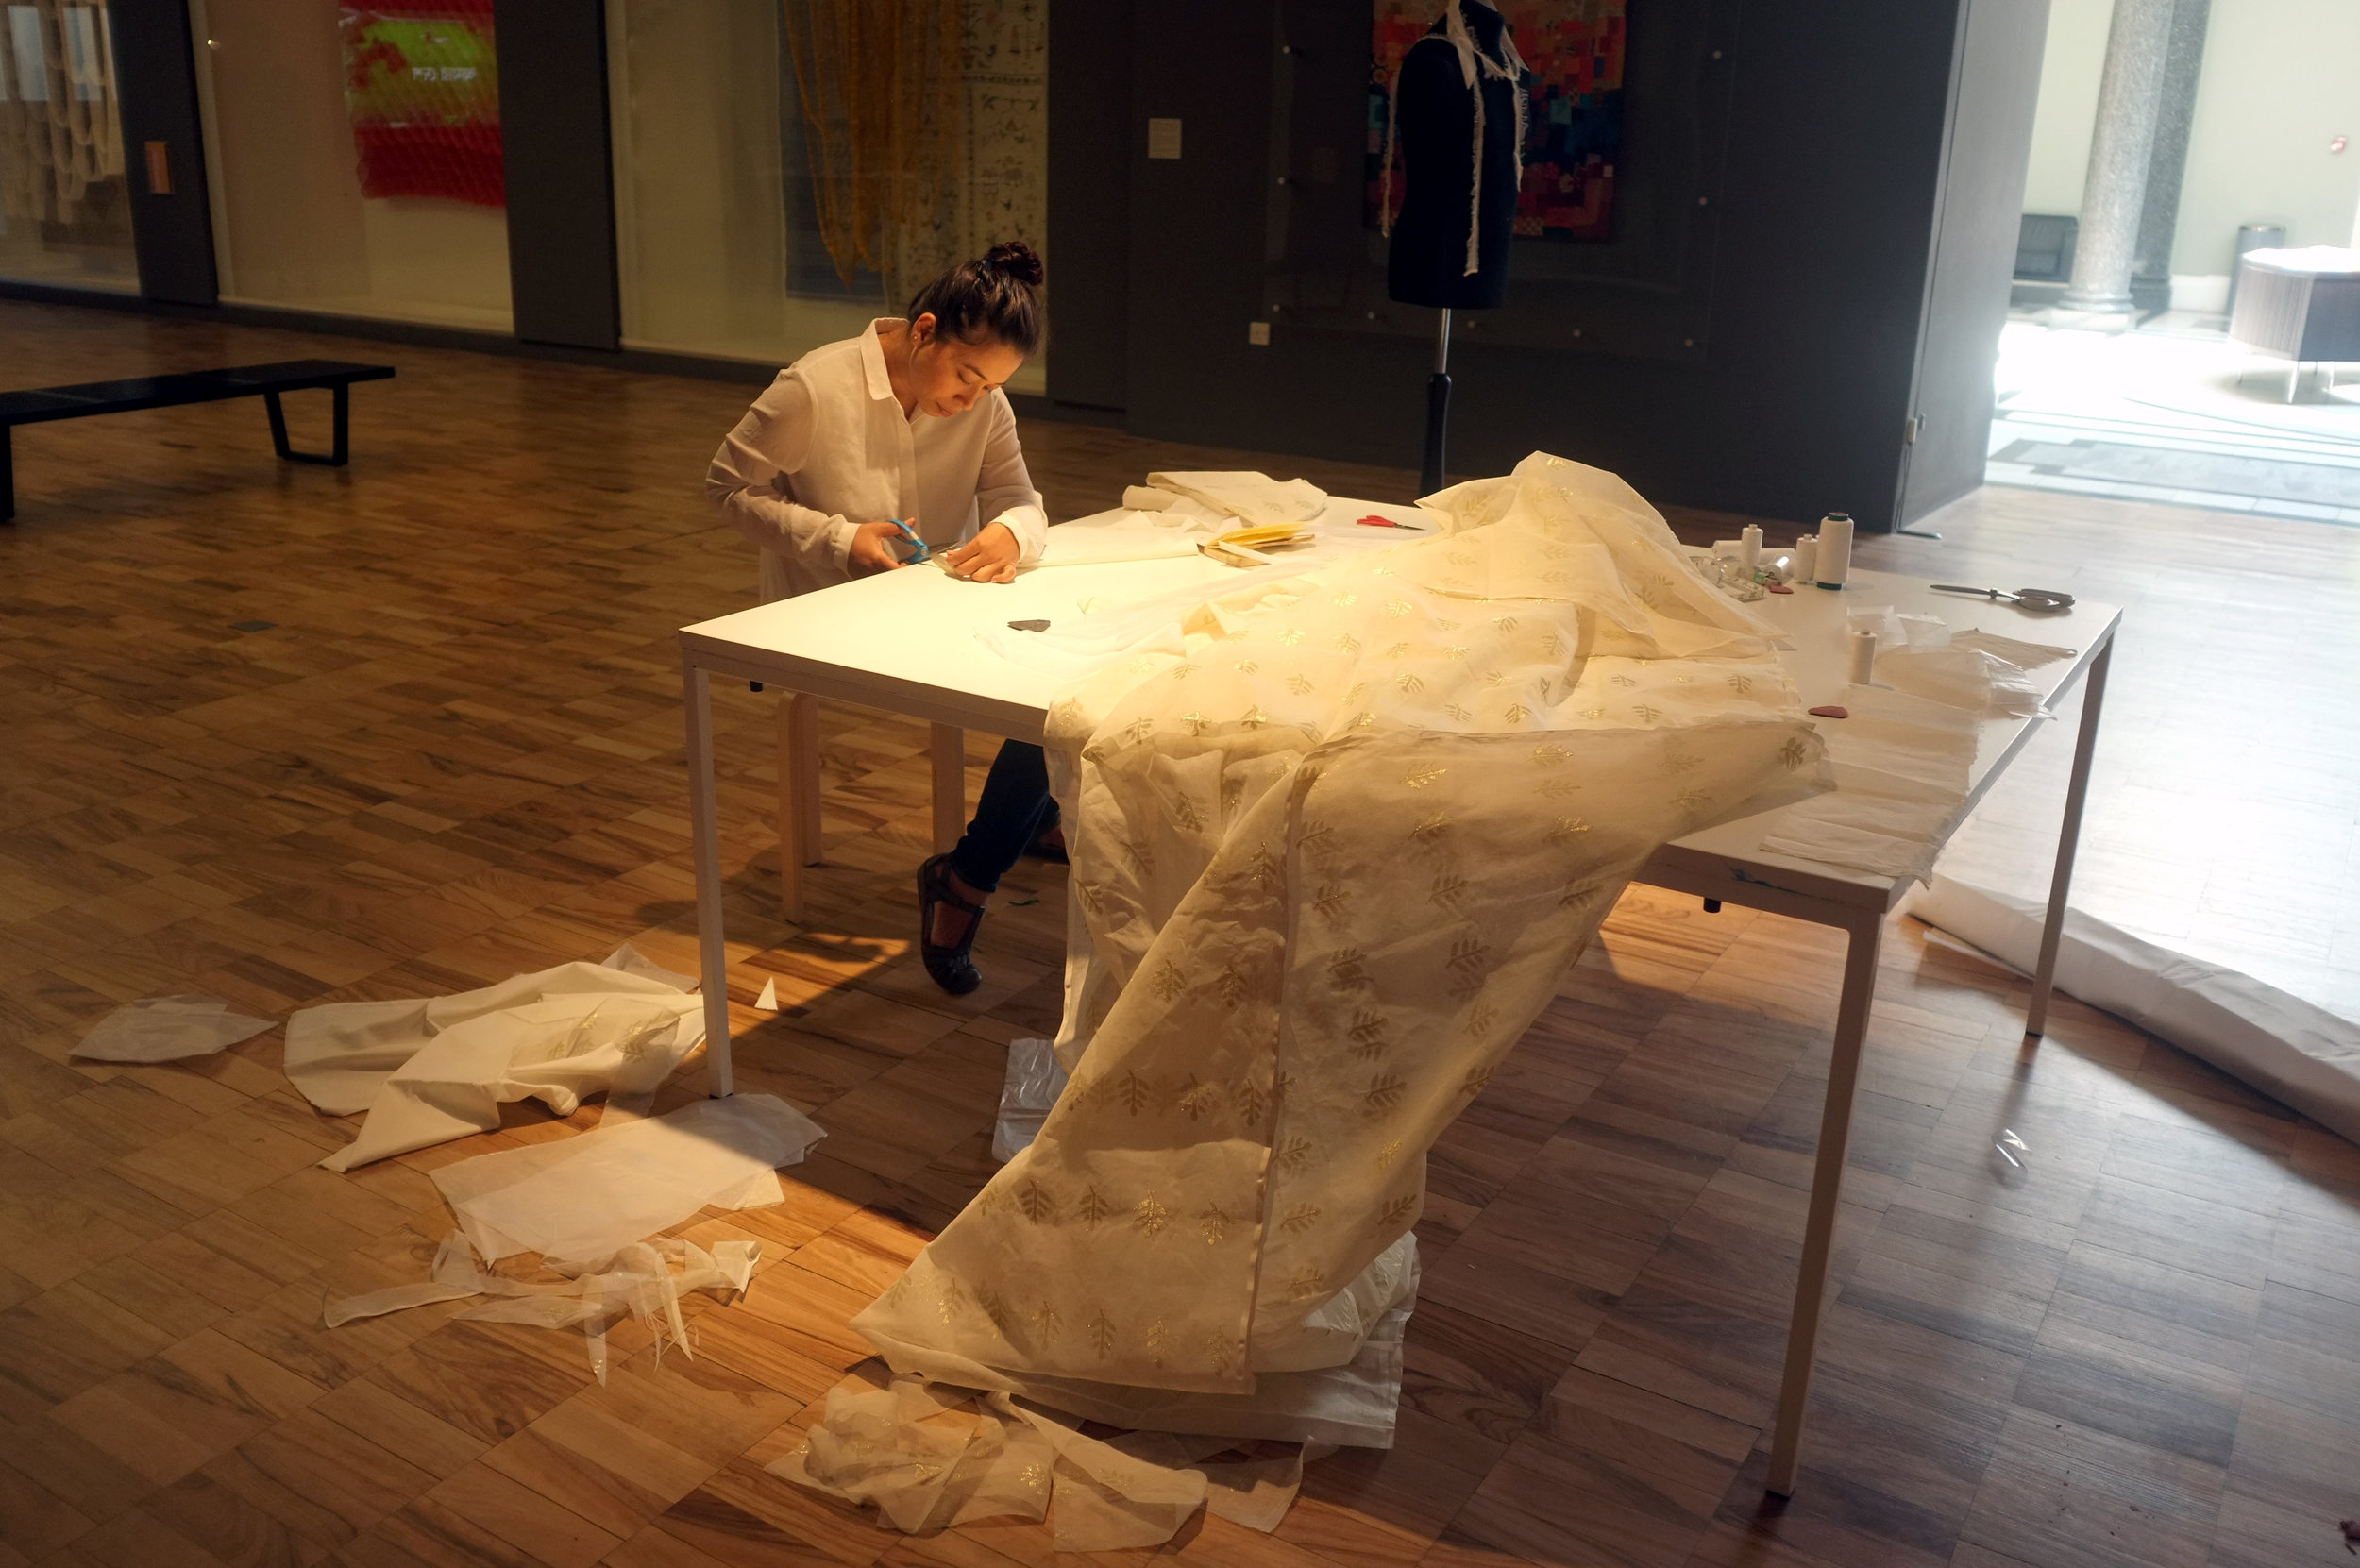 Performance Still of  A Tailor is sewing the dress of Tipu Sultan  (2018). Photo courtesy: Ashley Van Dyck and Whitworth, the University of Manchester.